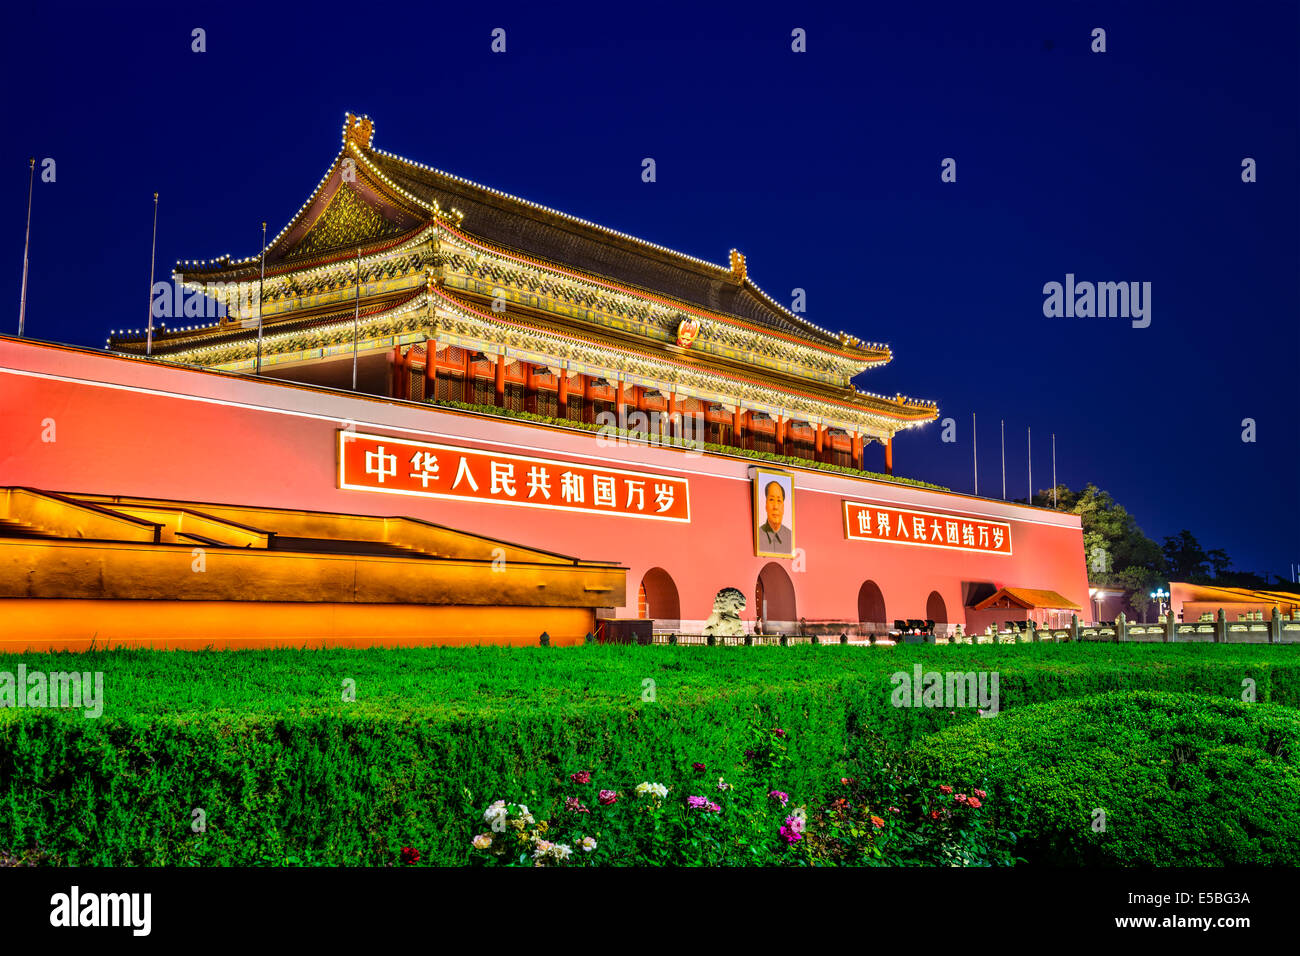 The Tiananmen Gate in Beijing, China. - Stock Image